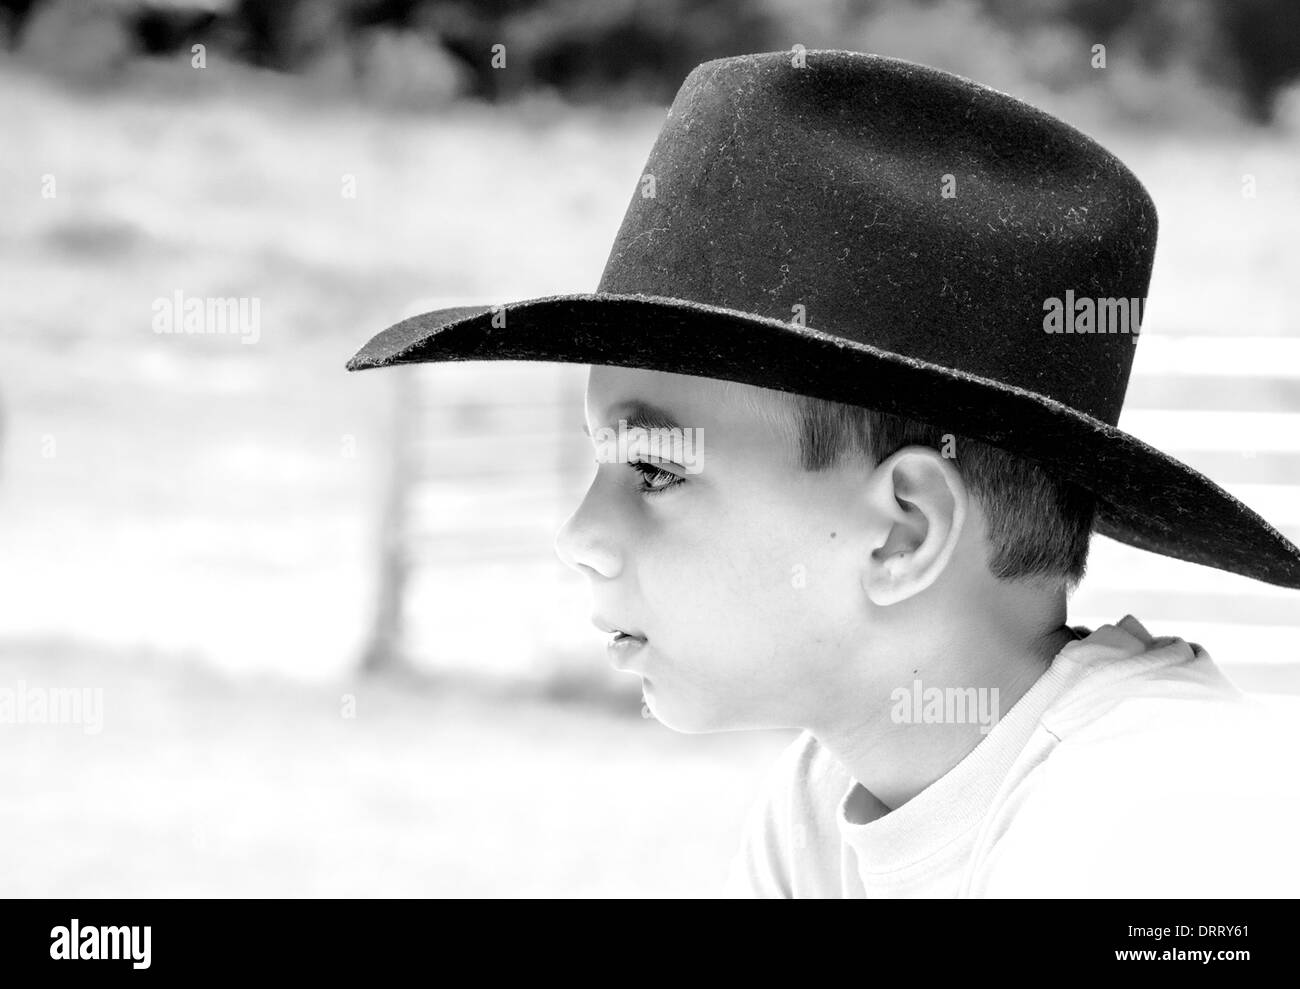 61b6663a8b3a6 Black and White Portrait of young teen boy in black cowboy hat on ranch -  Stock